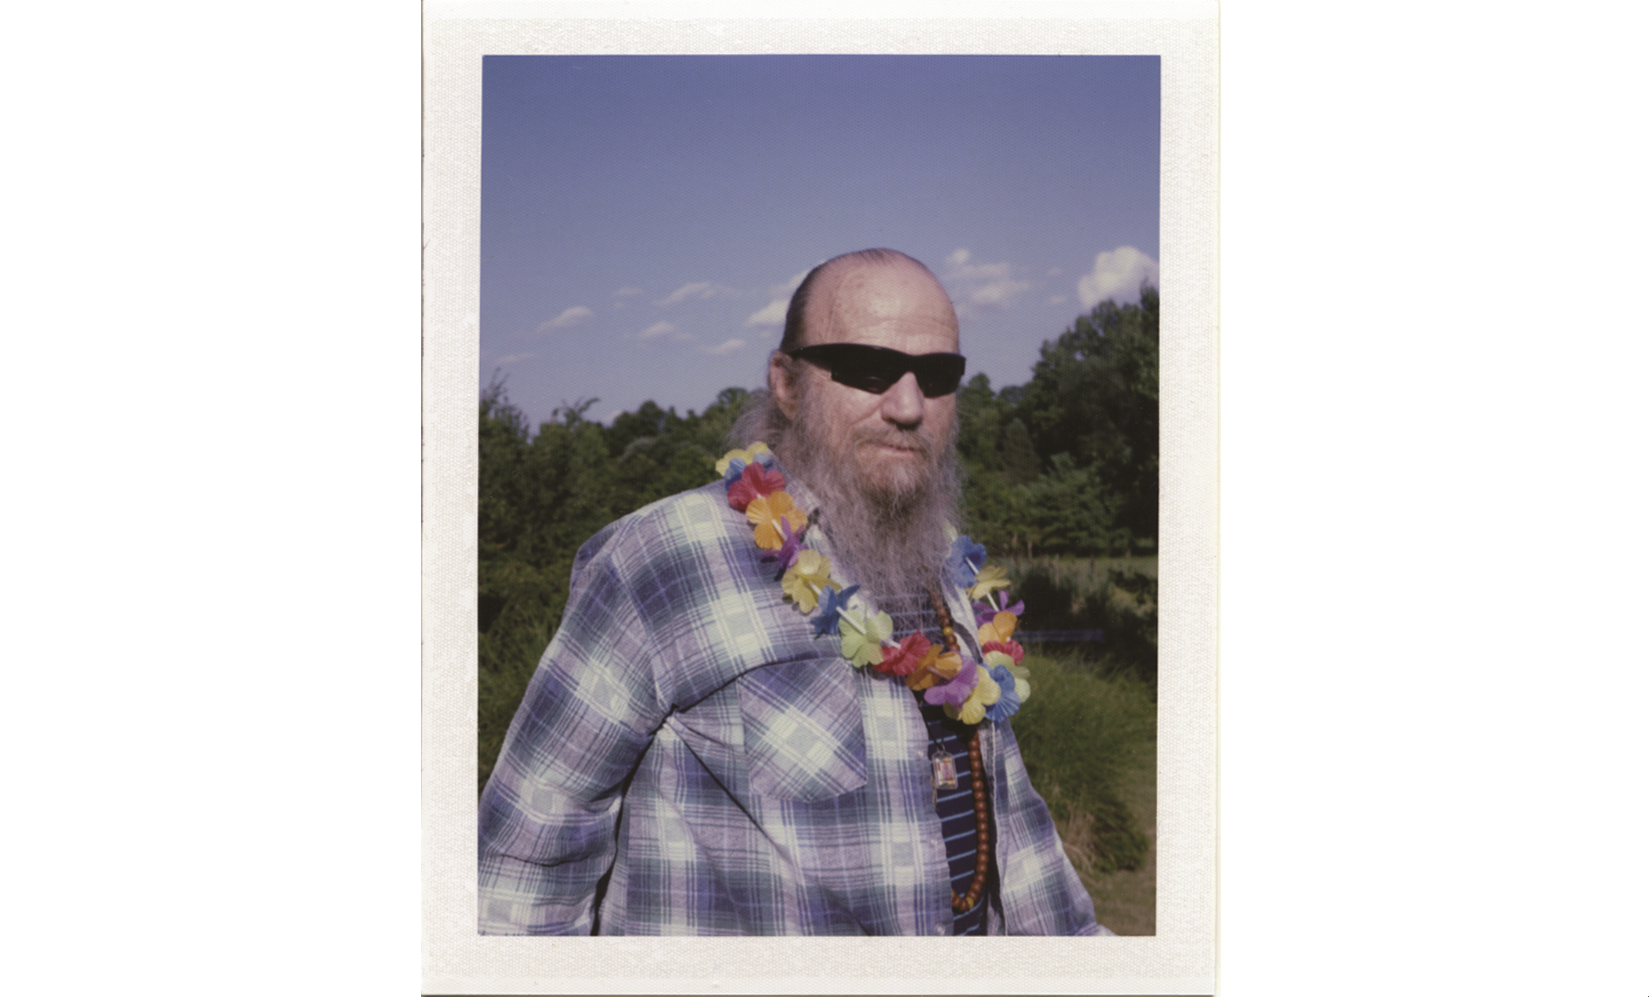 Billy Name photographed at home in upstate New York, August 2015